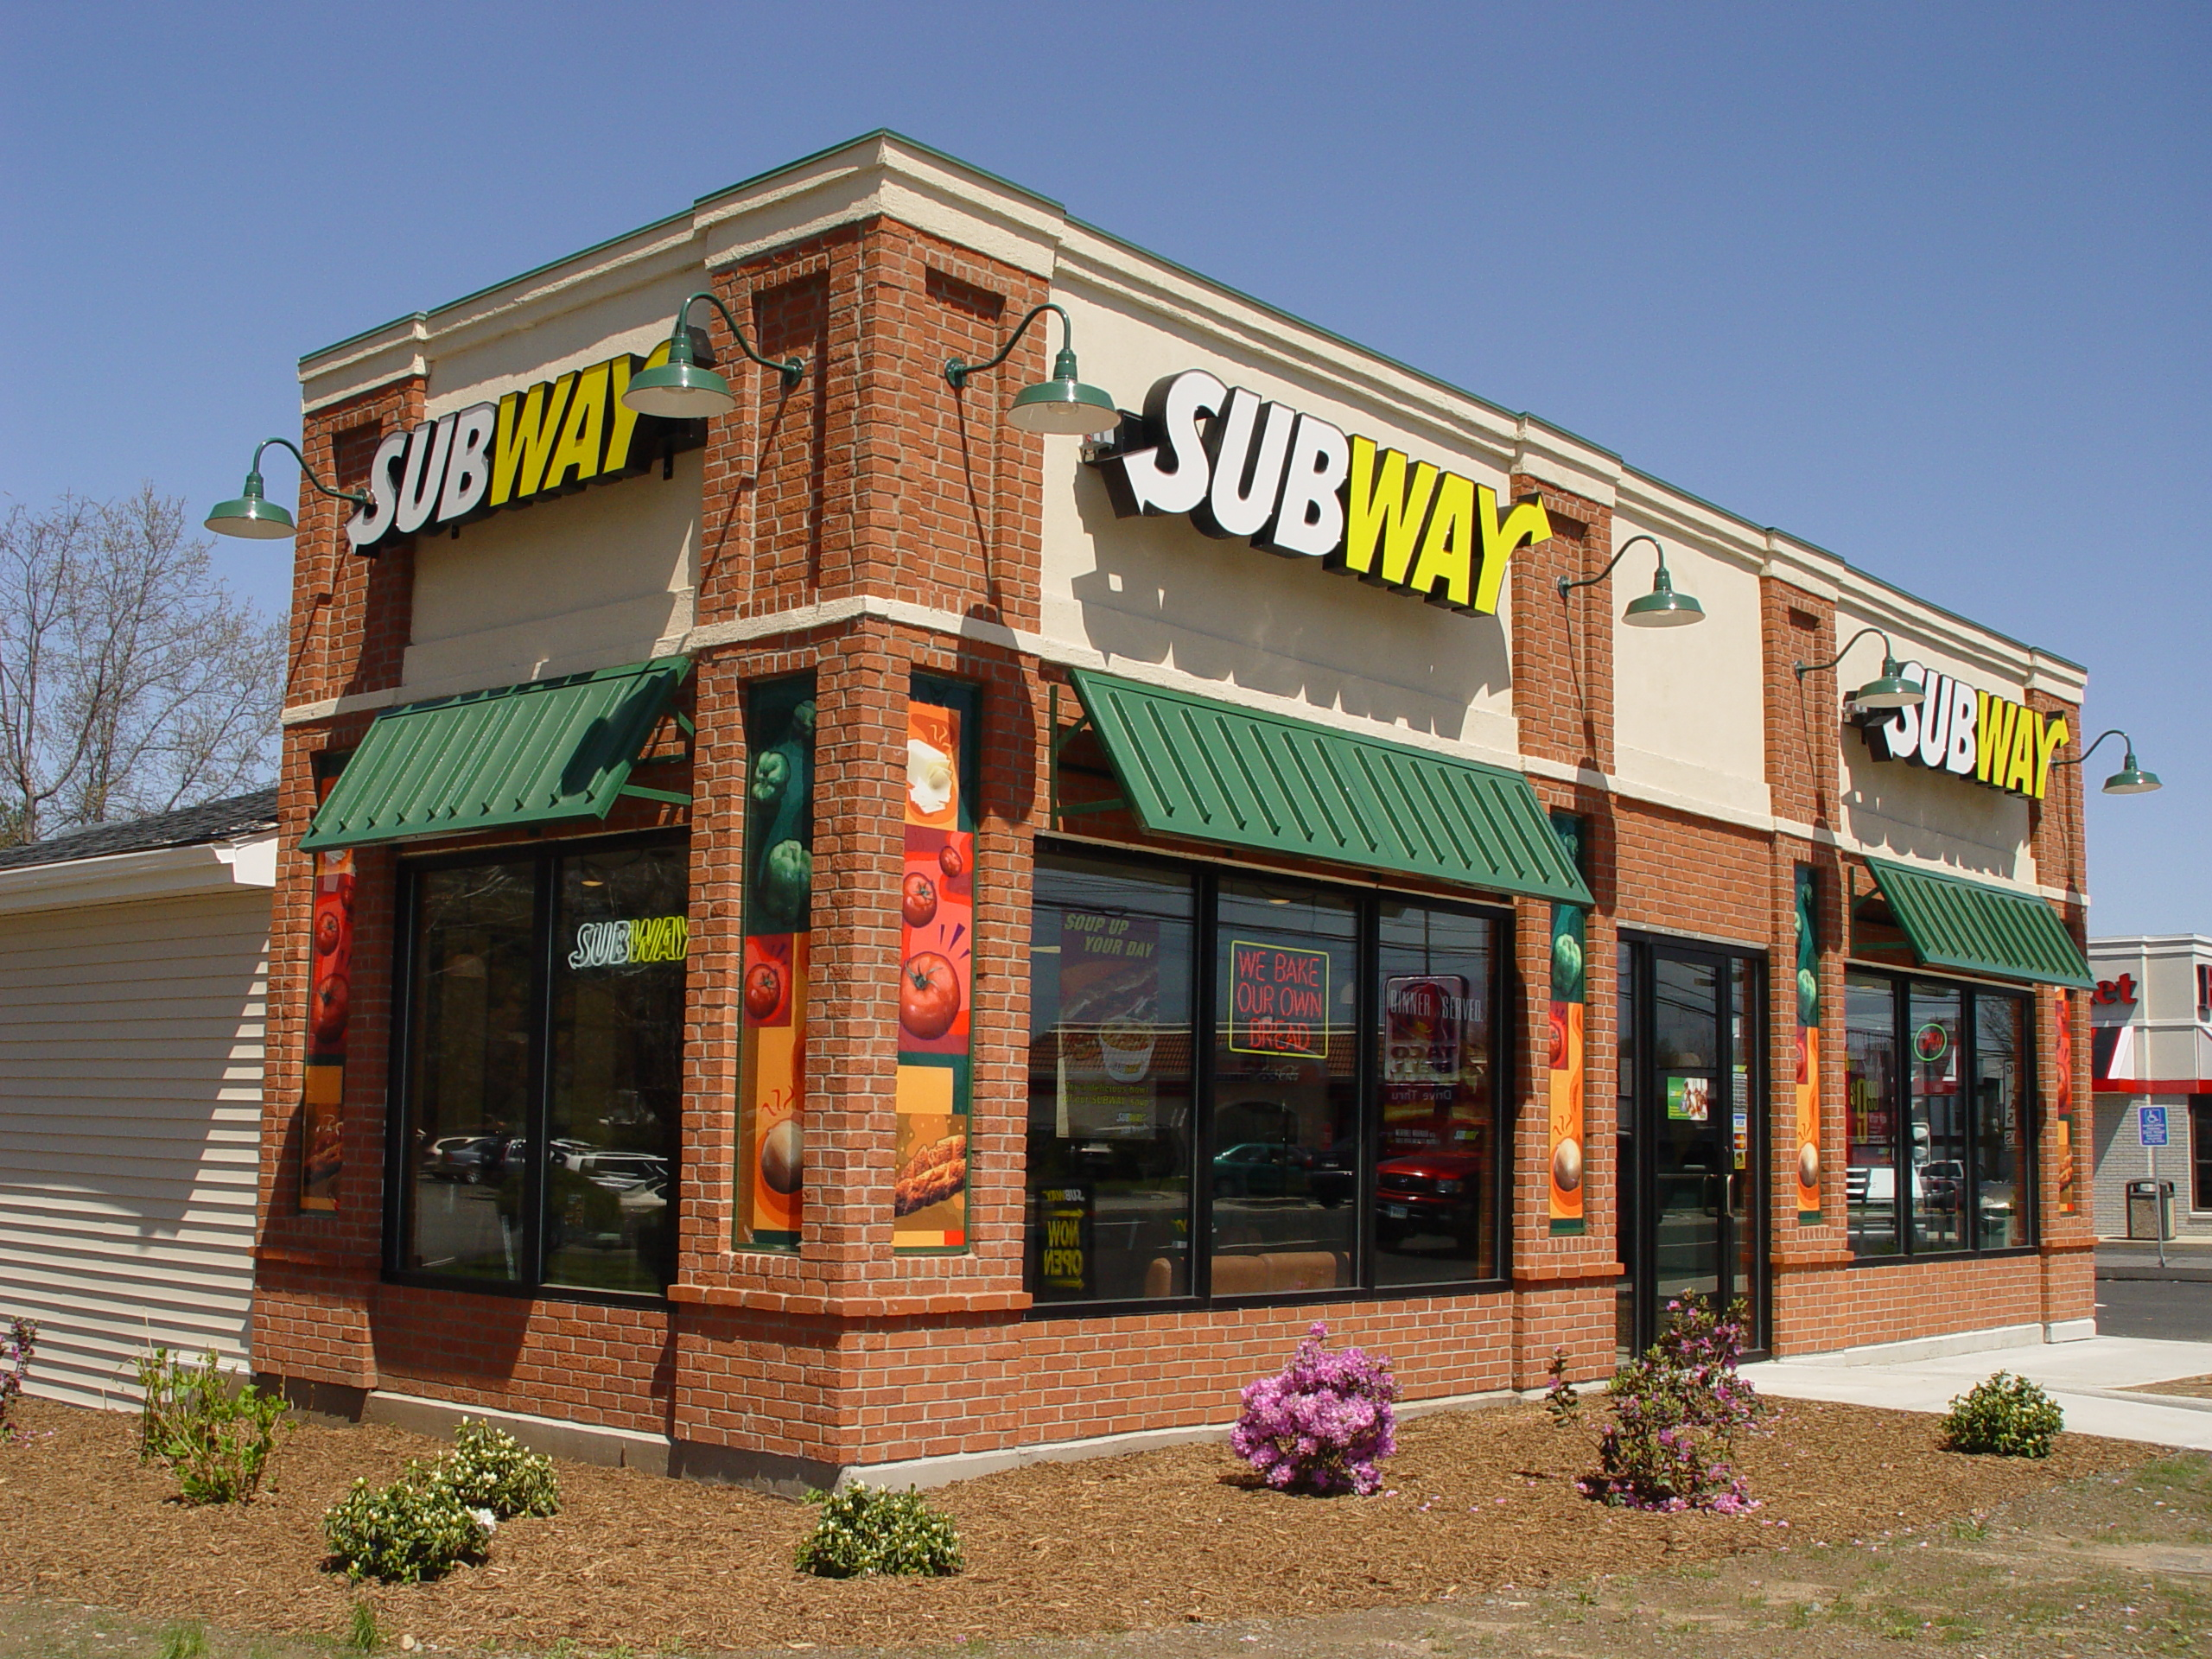 Subway, Jackson OH